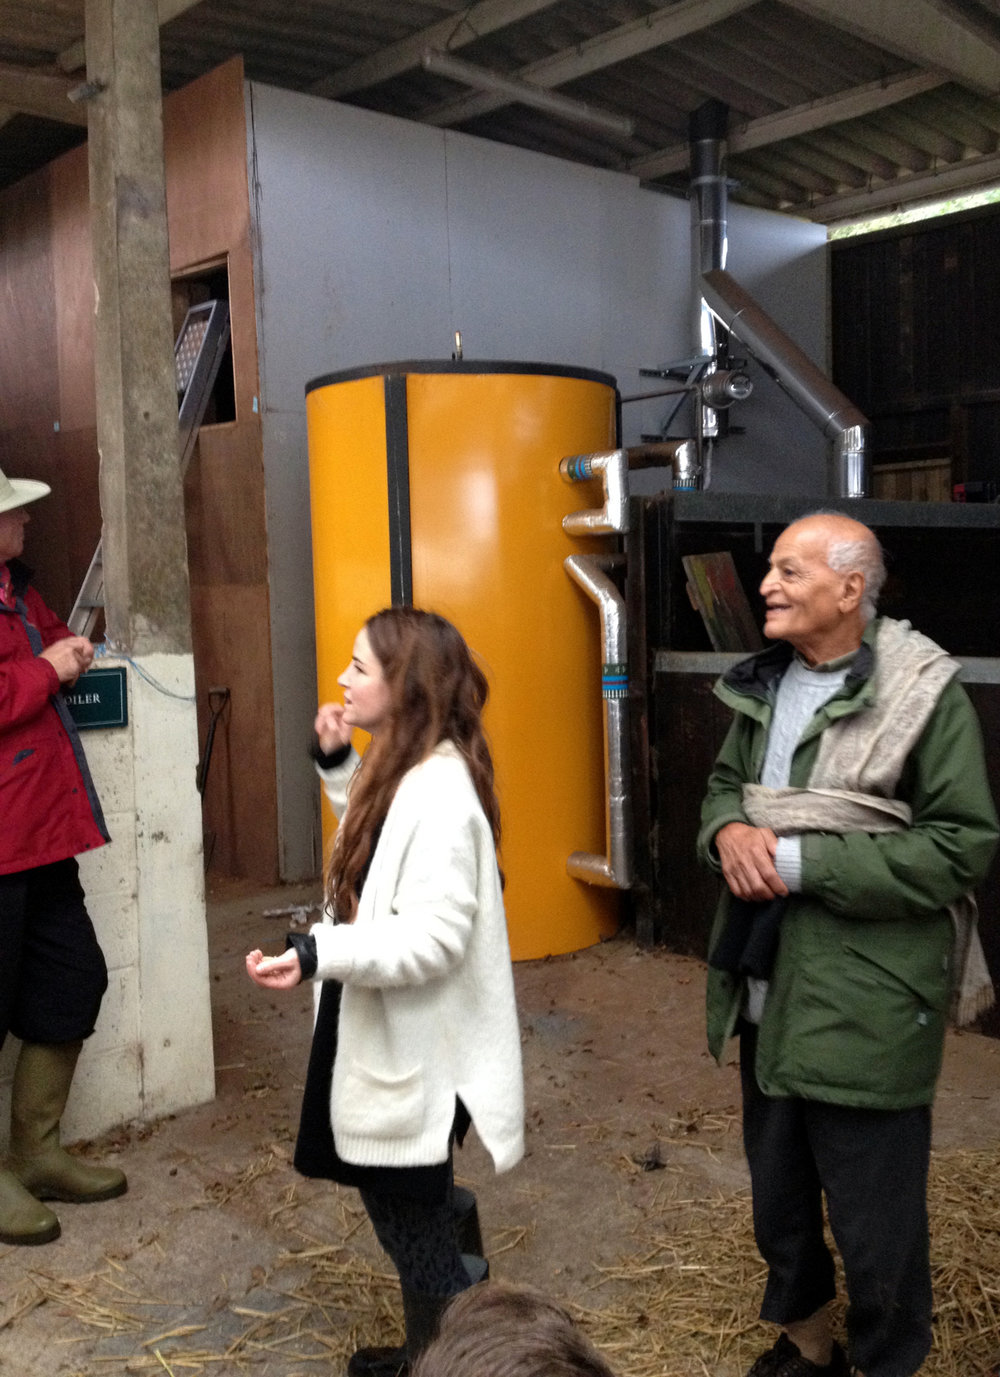 42 Acres founder, Lara showing us the biomass boiler